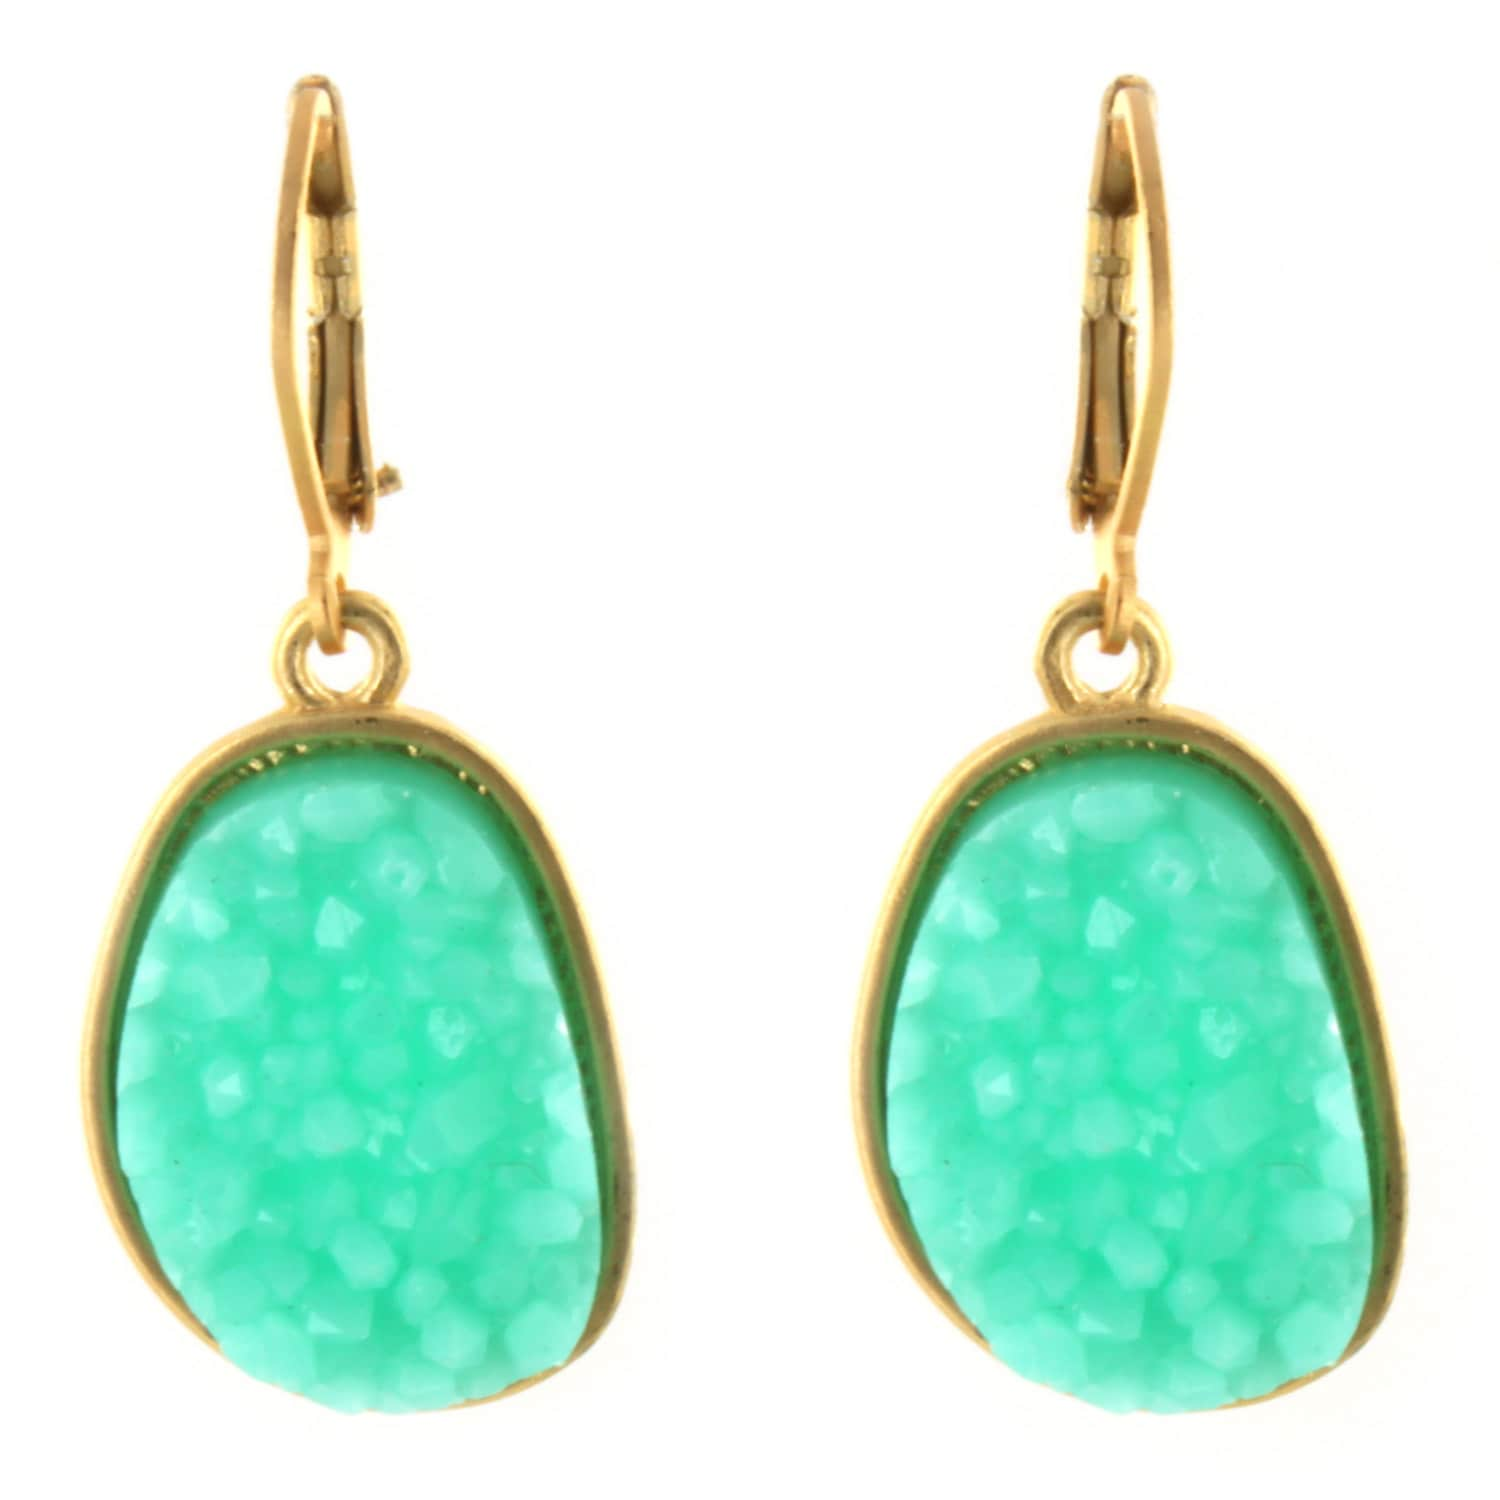 Inspired Fashion Jewelry Big Oval Drusy Earrings Turquoise in Silver Metal Tone